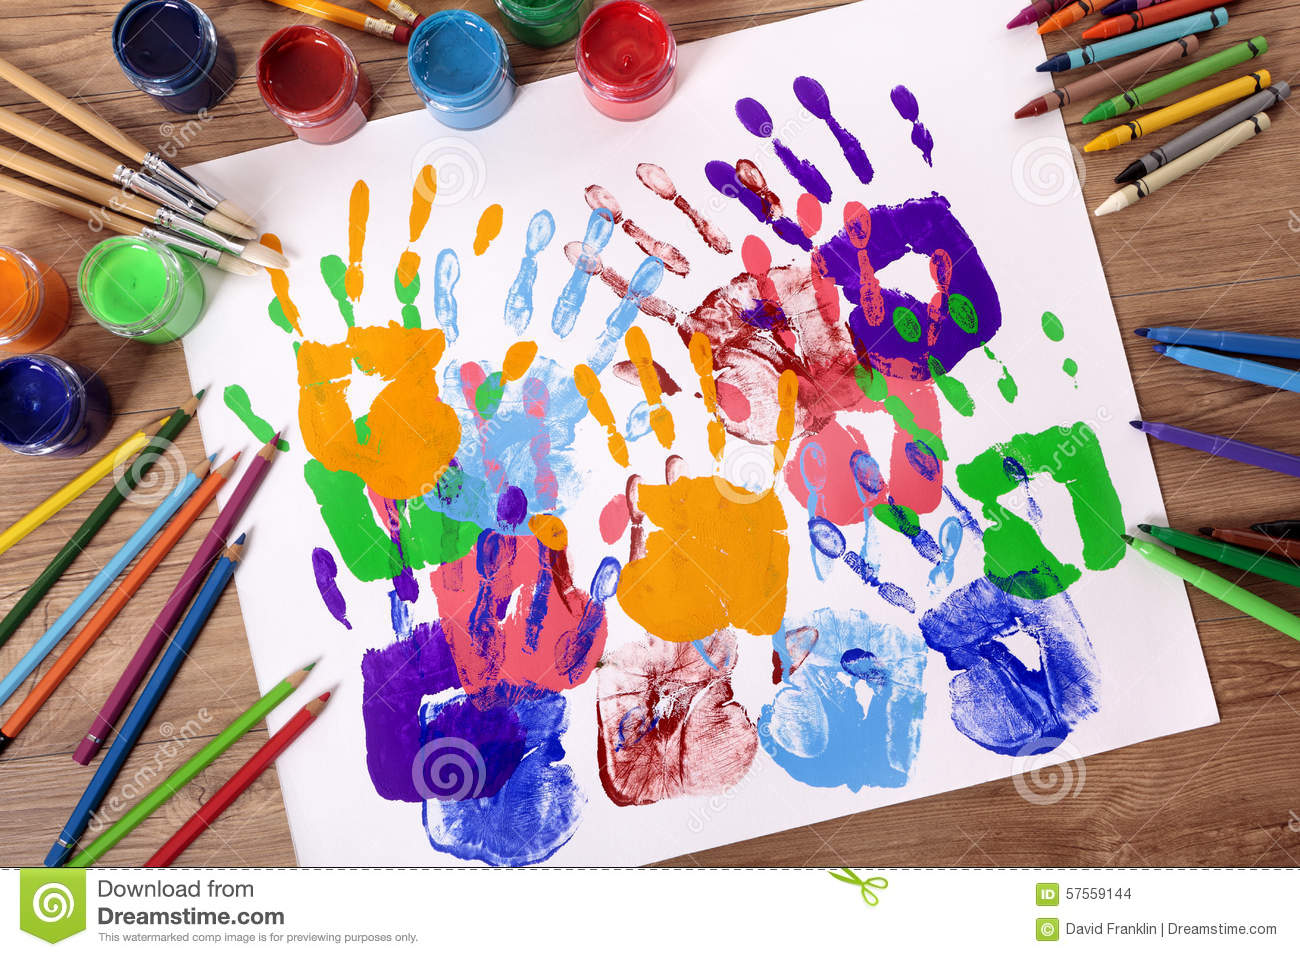 Art and craft class hand prints painting supplies for Homedepot colorsmartbybehr com paintstore